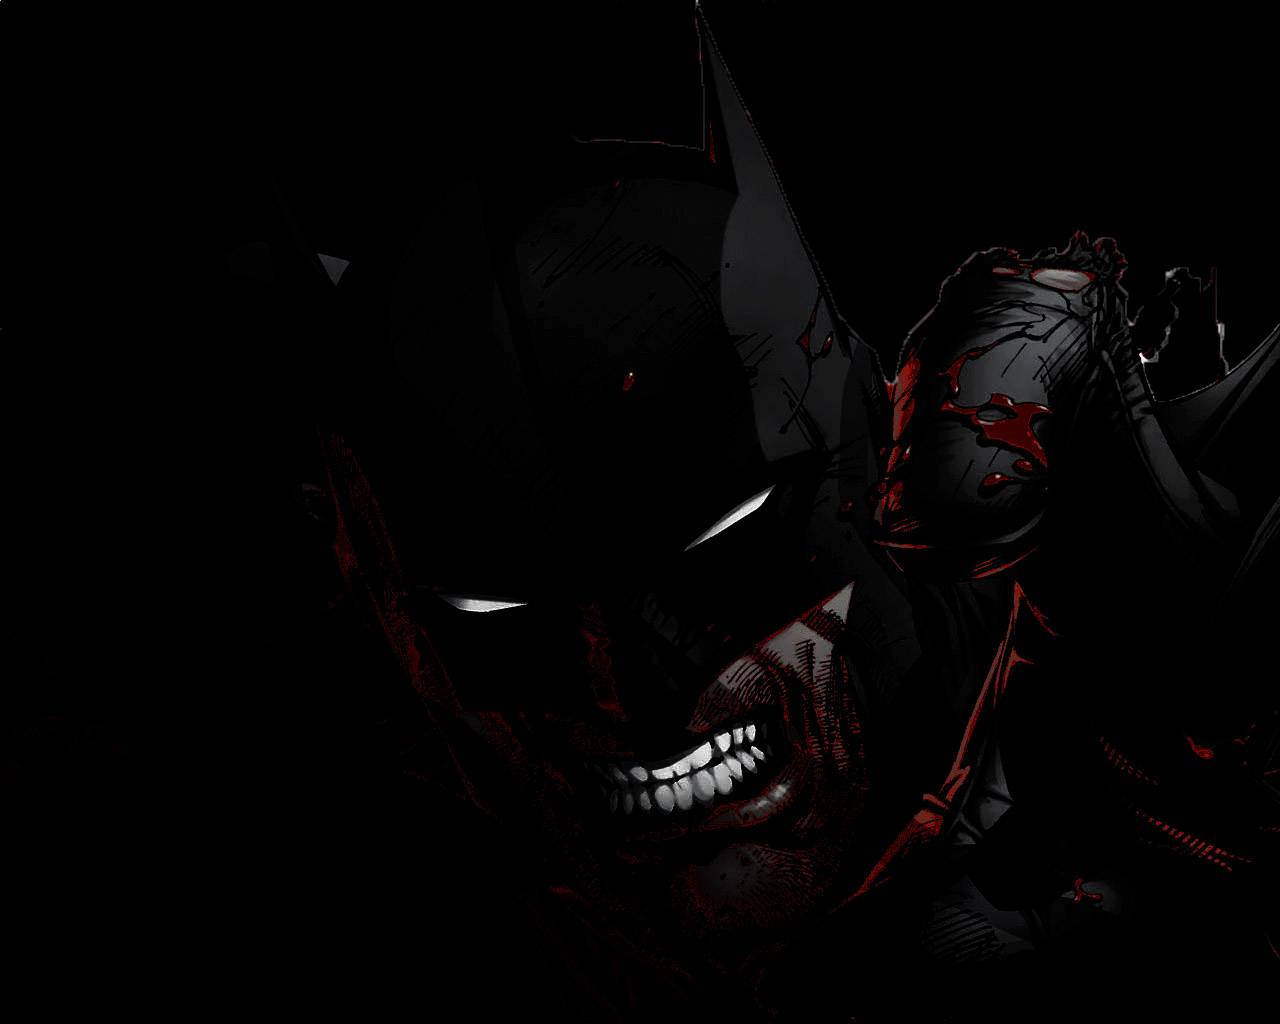 30 Batman HD Wallpapers for Desktop 1280x1024